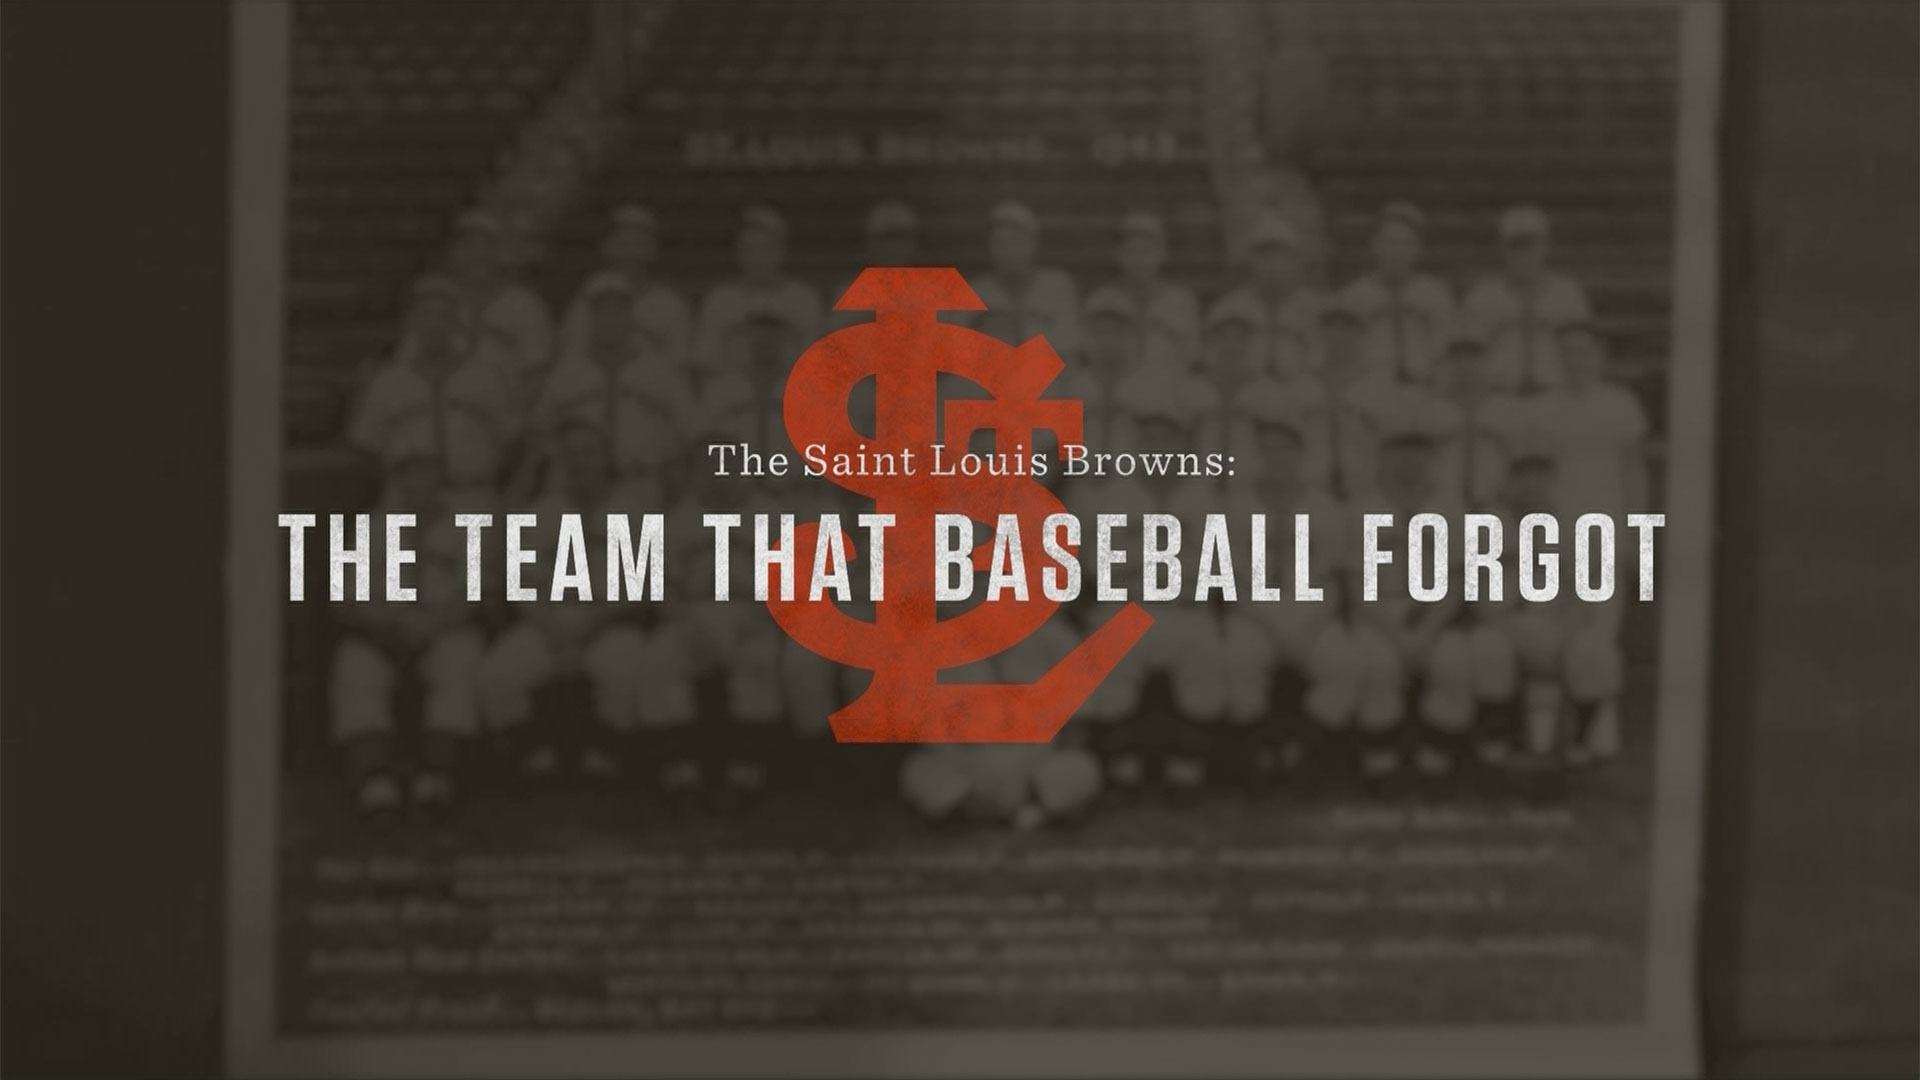 St. Louis Browns: The Team that Baseball Forgot